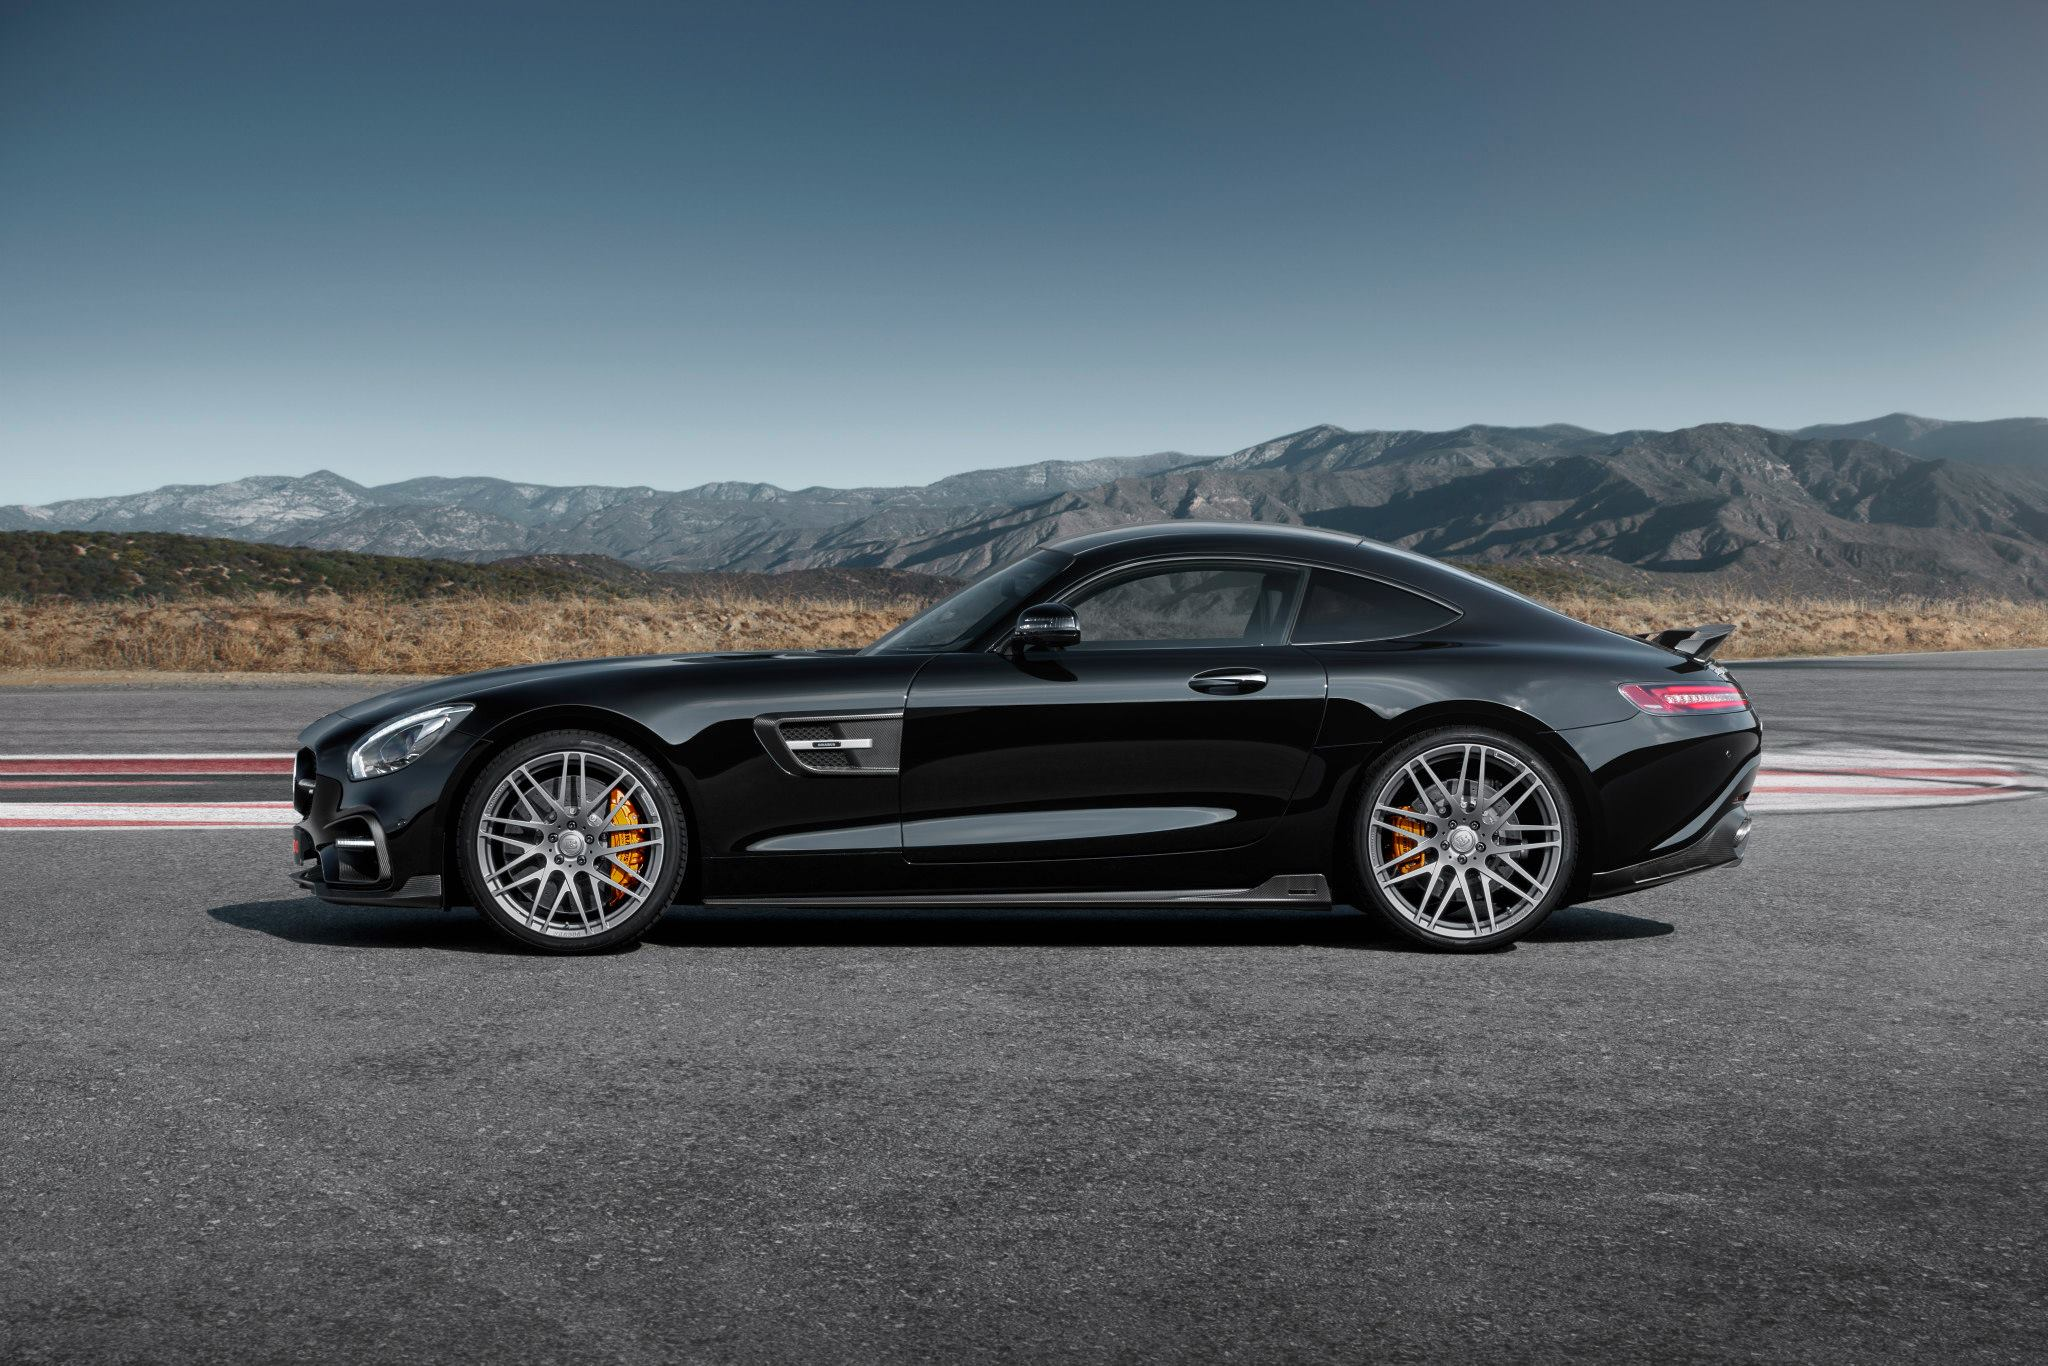 brabus reveals tuned mercedes amg gt s with 600 hp ahead. Black Bedroom Furniture Sets. Home Design Ideas